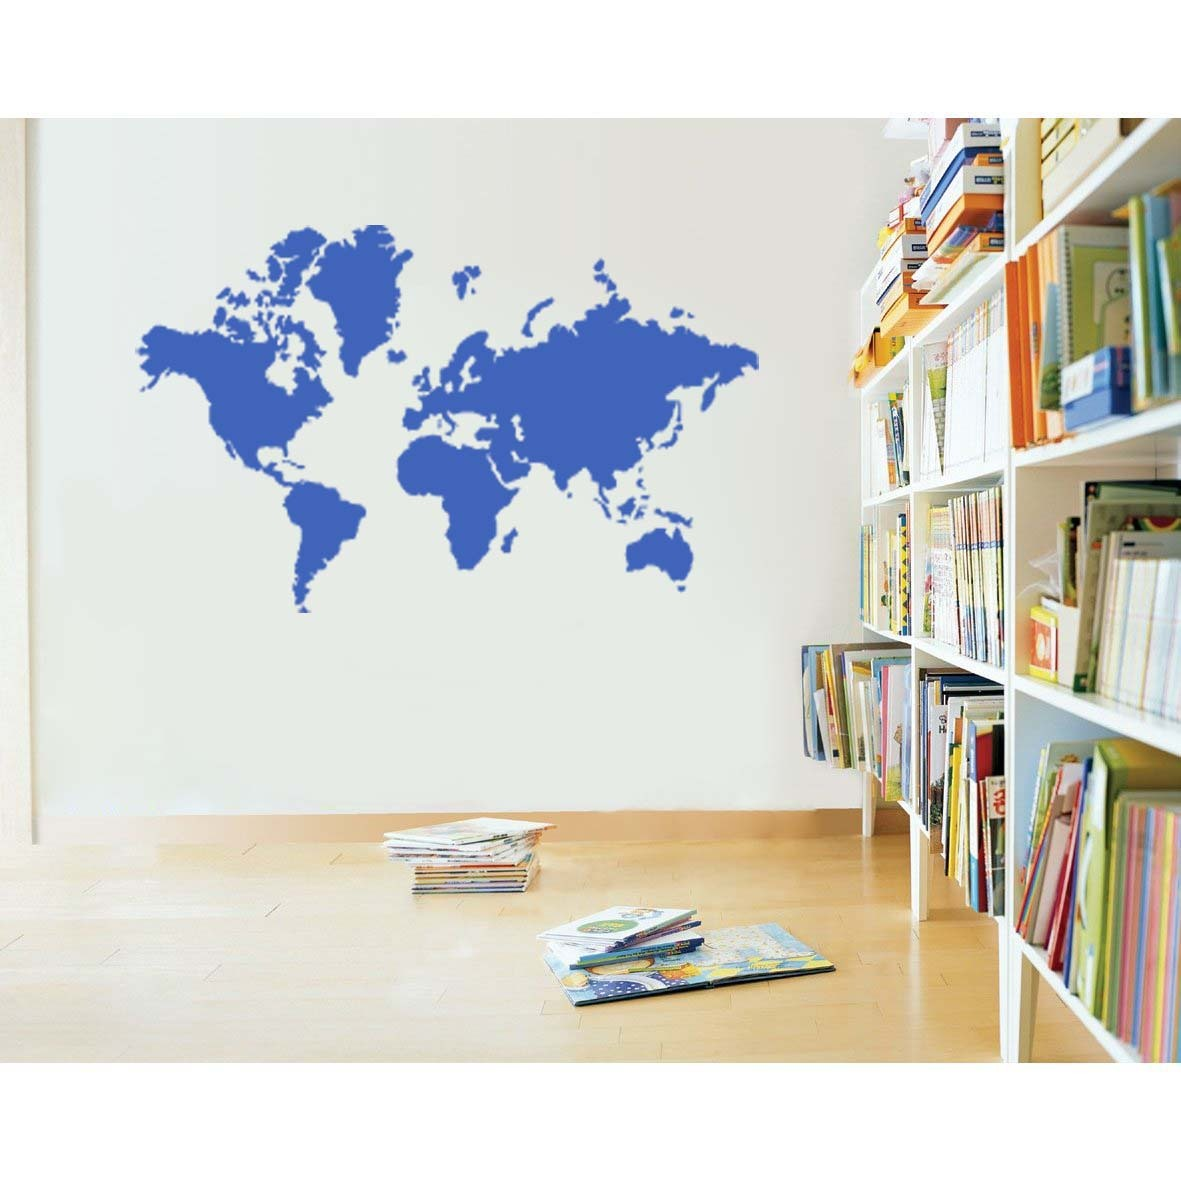 Large map wall decal elitflat large world map vinyl wall sticker decal decals publicscrutiny Gallery